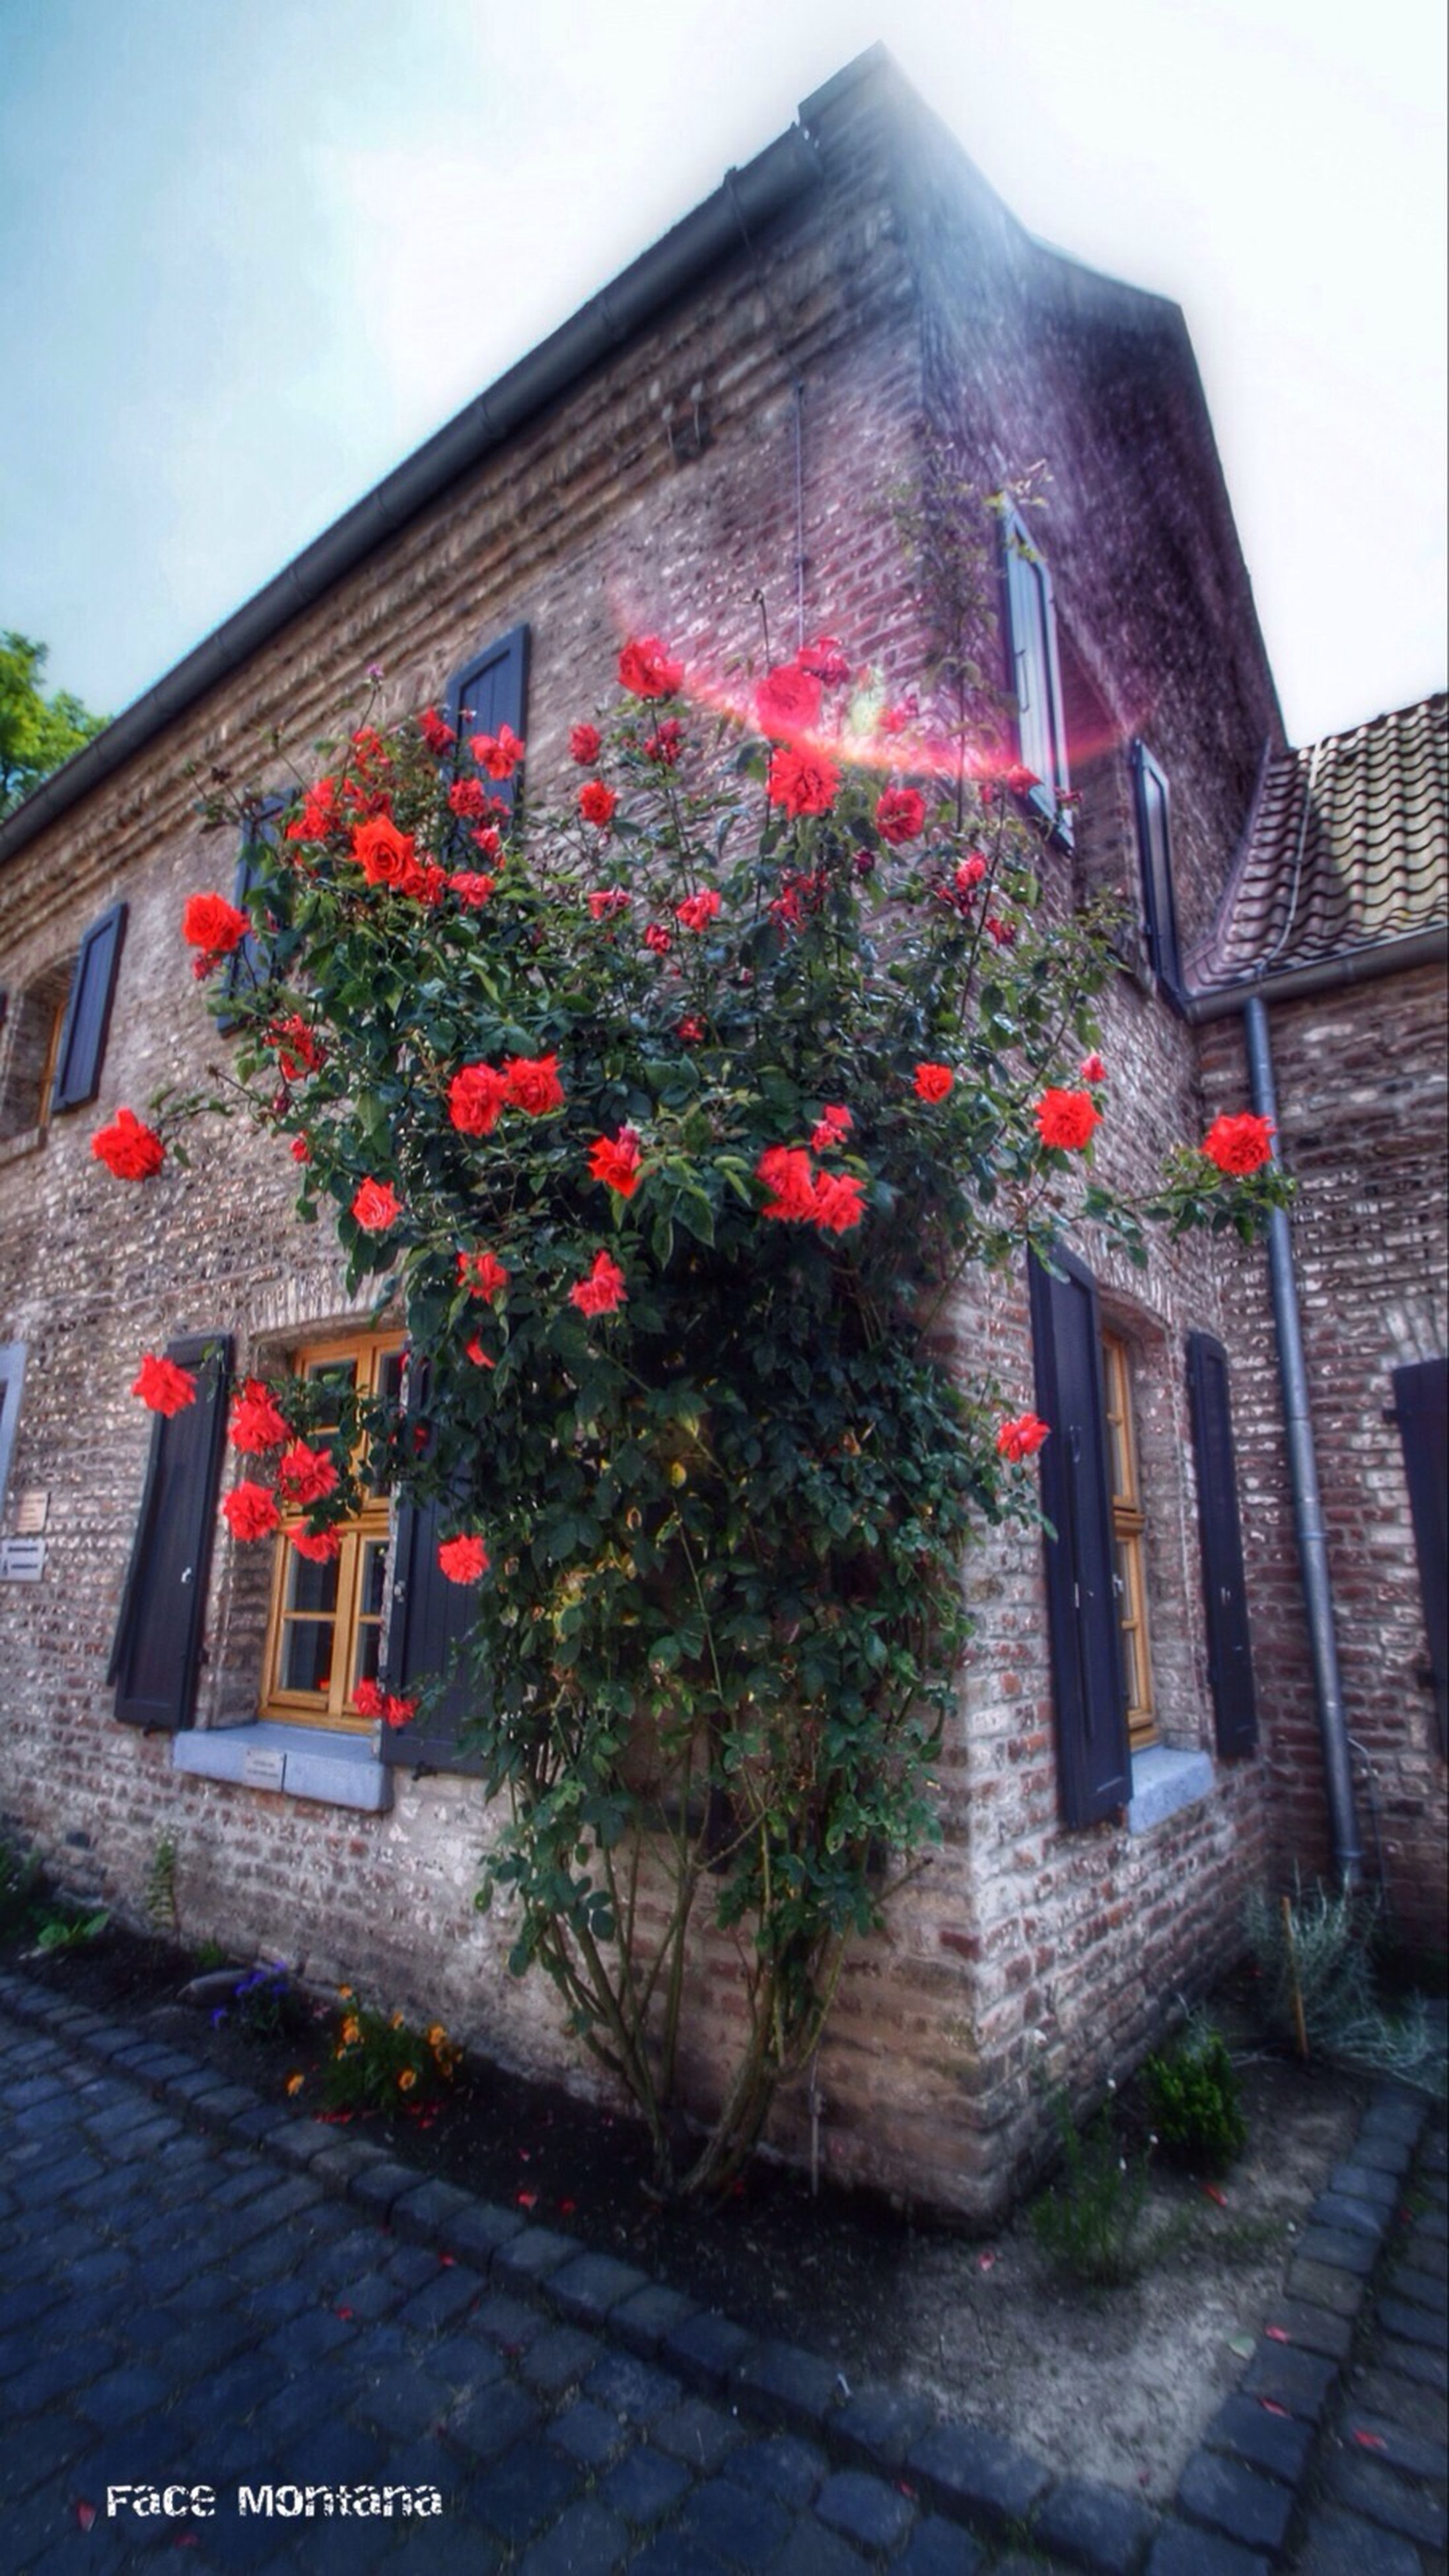 building exterior, architecture, built structure, red, flower, house, plant, growth, low angle view, freshness, sky, day, outdoors, tree, no people, window, residential structure, nature, residential building, wall - building feature